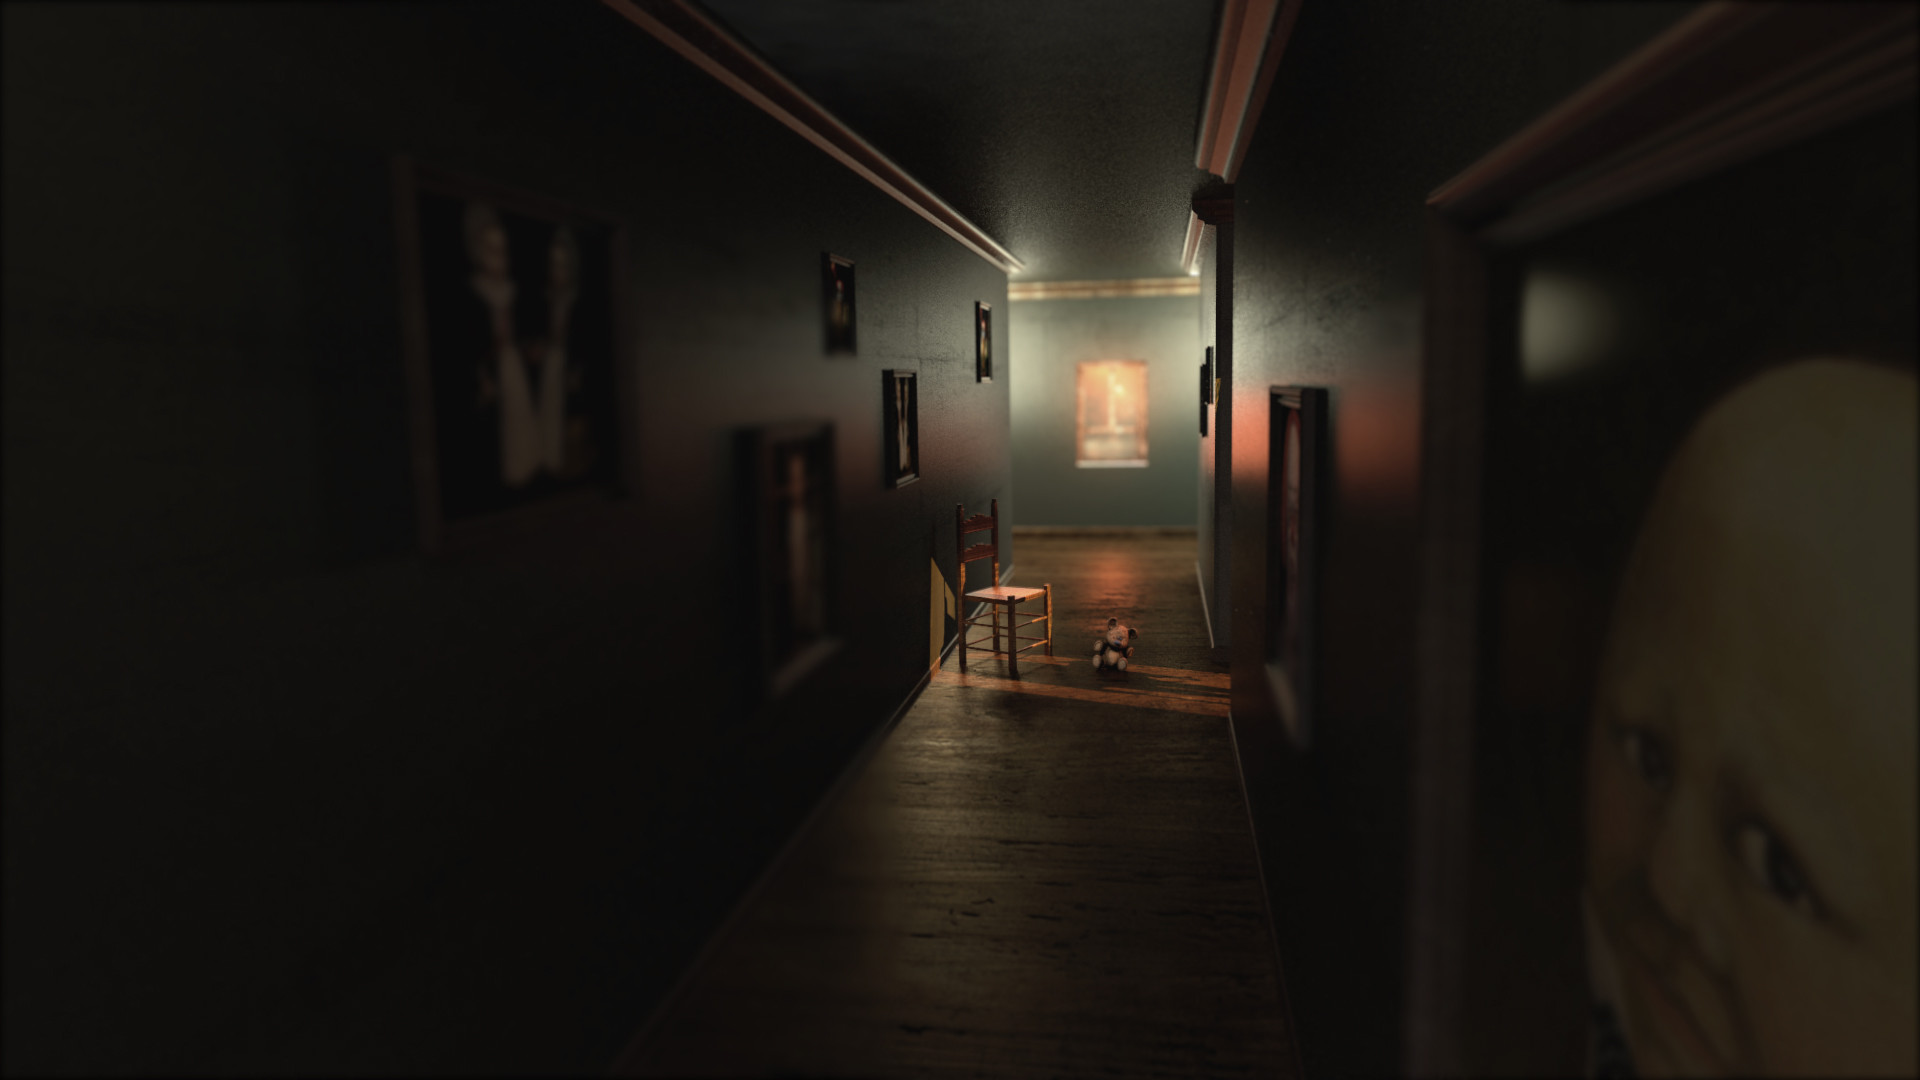 horror lighting. Final Render - Changed The Camera Angle For A More Dramatic View Horror Lighting